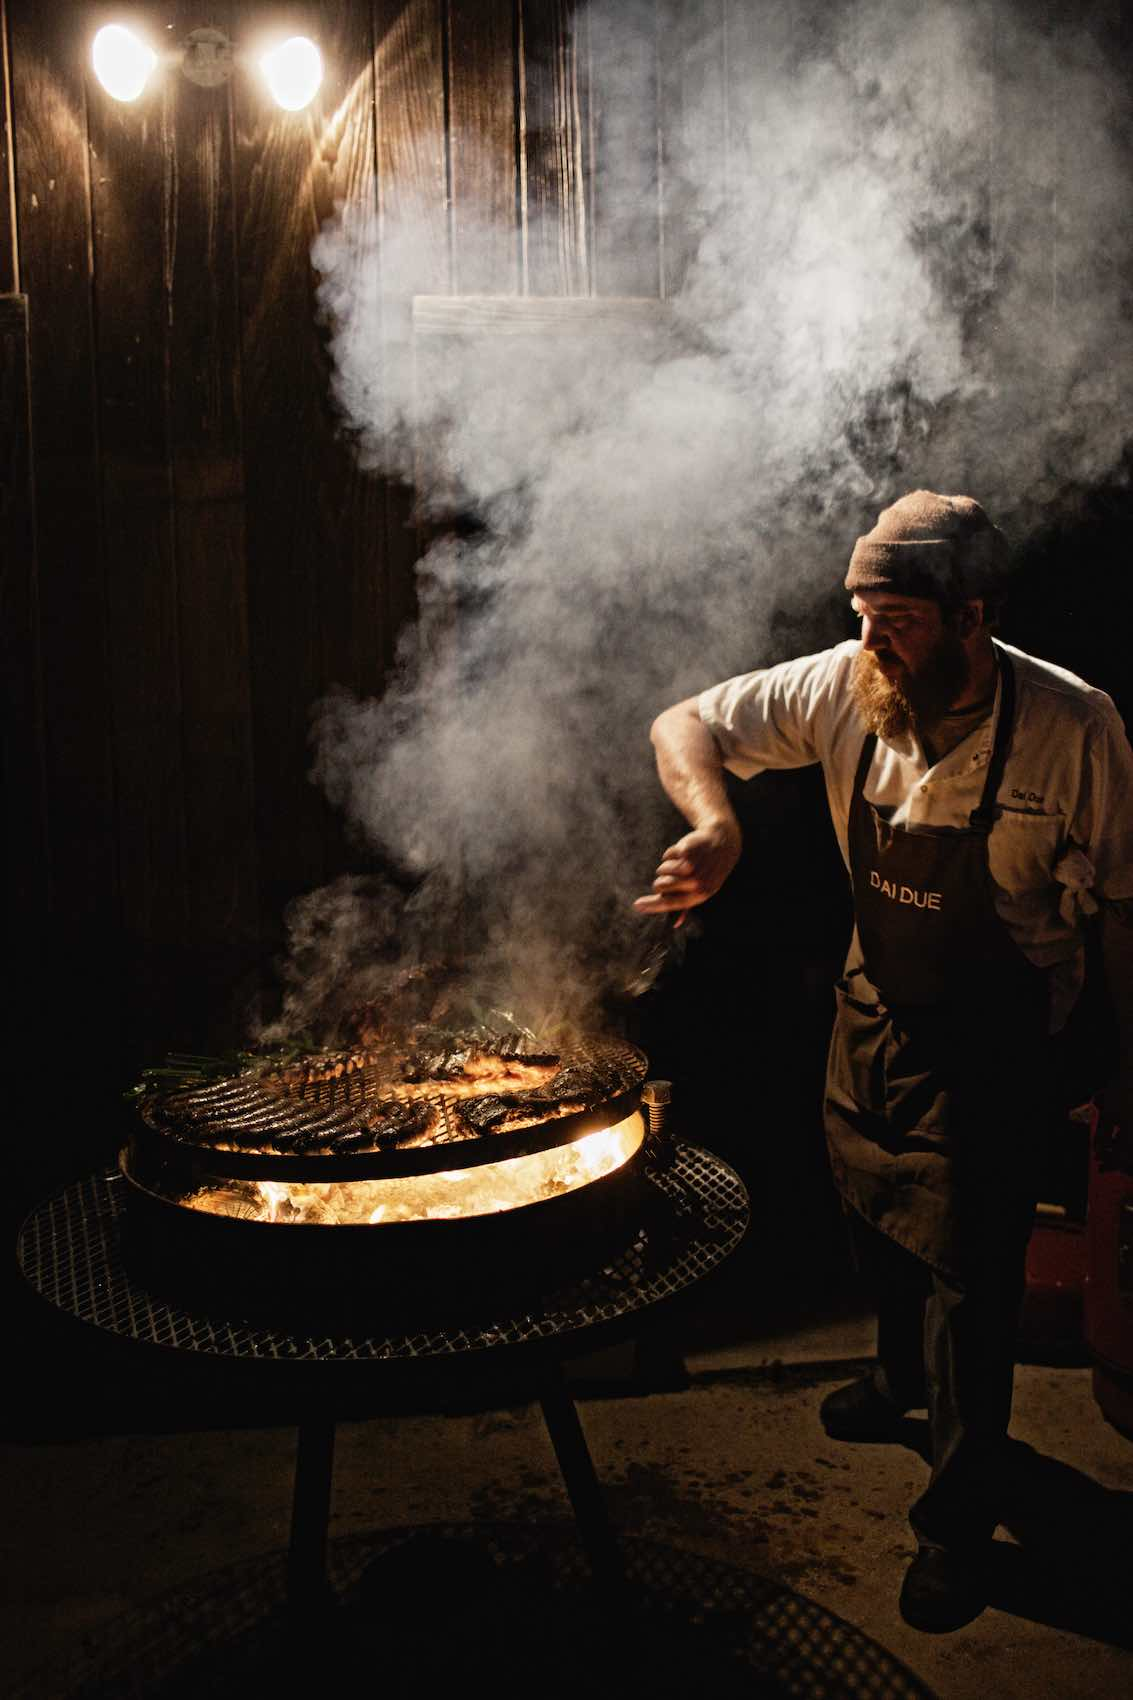 Jody Horton Photography - Chef Jesse Griffith cooking meats on outdoor grill.